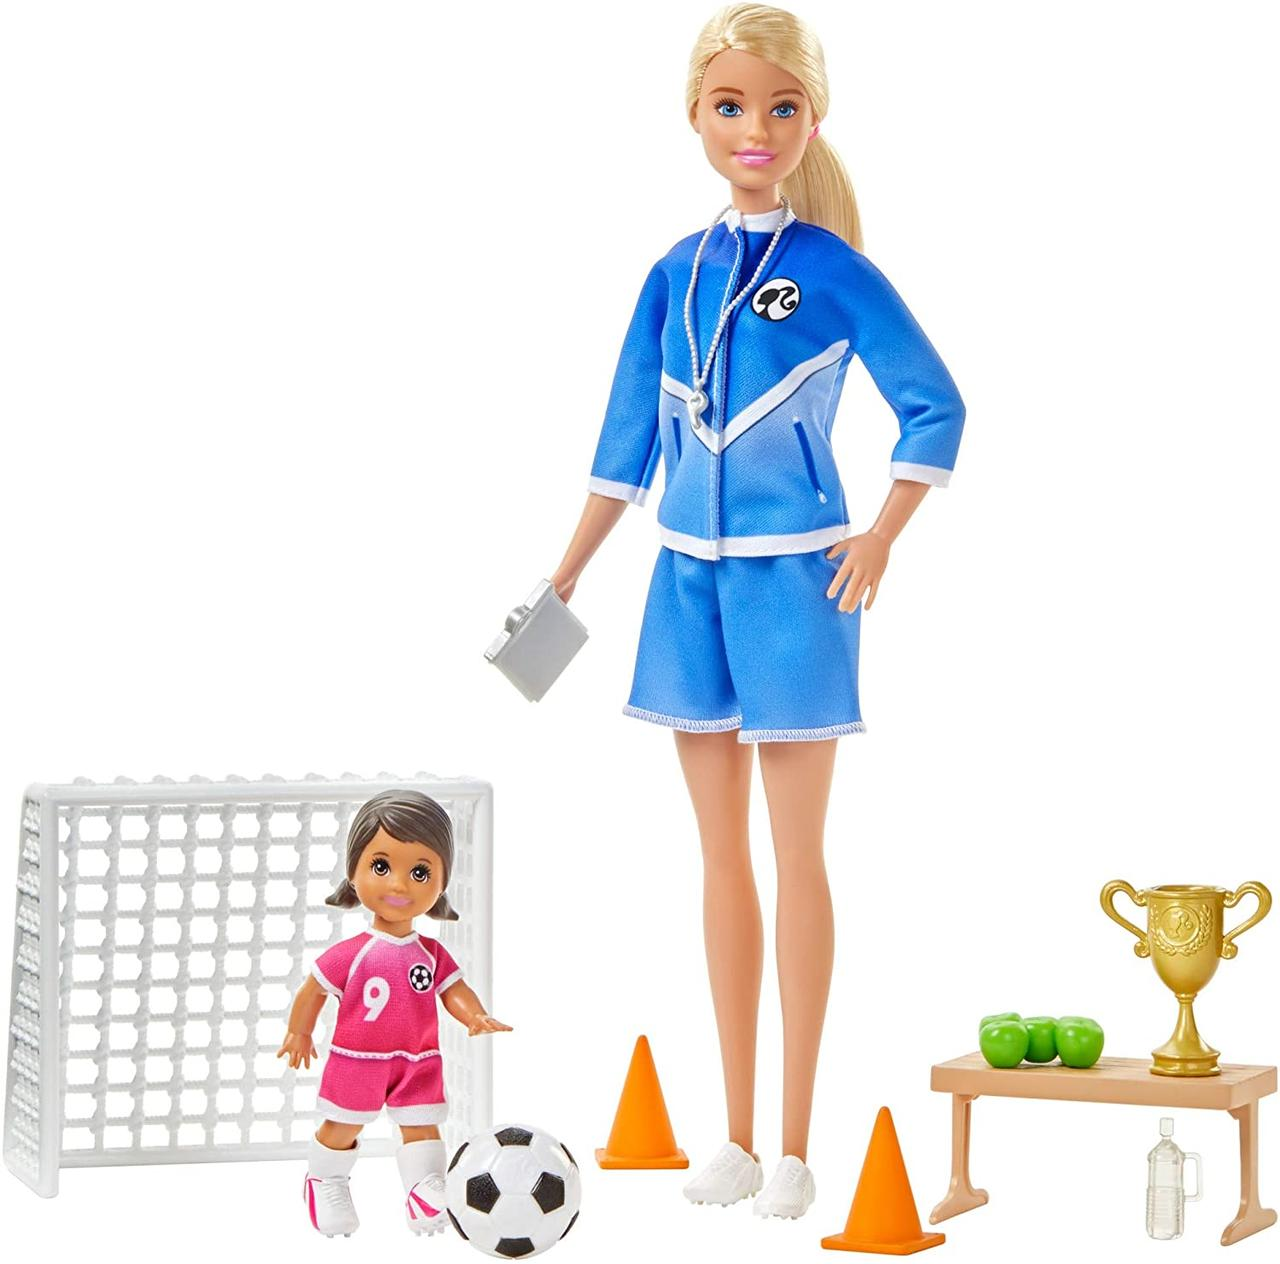 Кукла Барби тренер по по футболу Barbie Soccer Coach Playset with Blonde Soccer Coach Doll